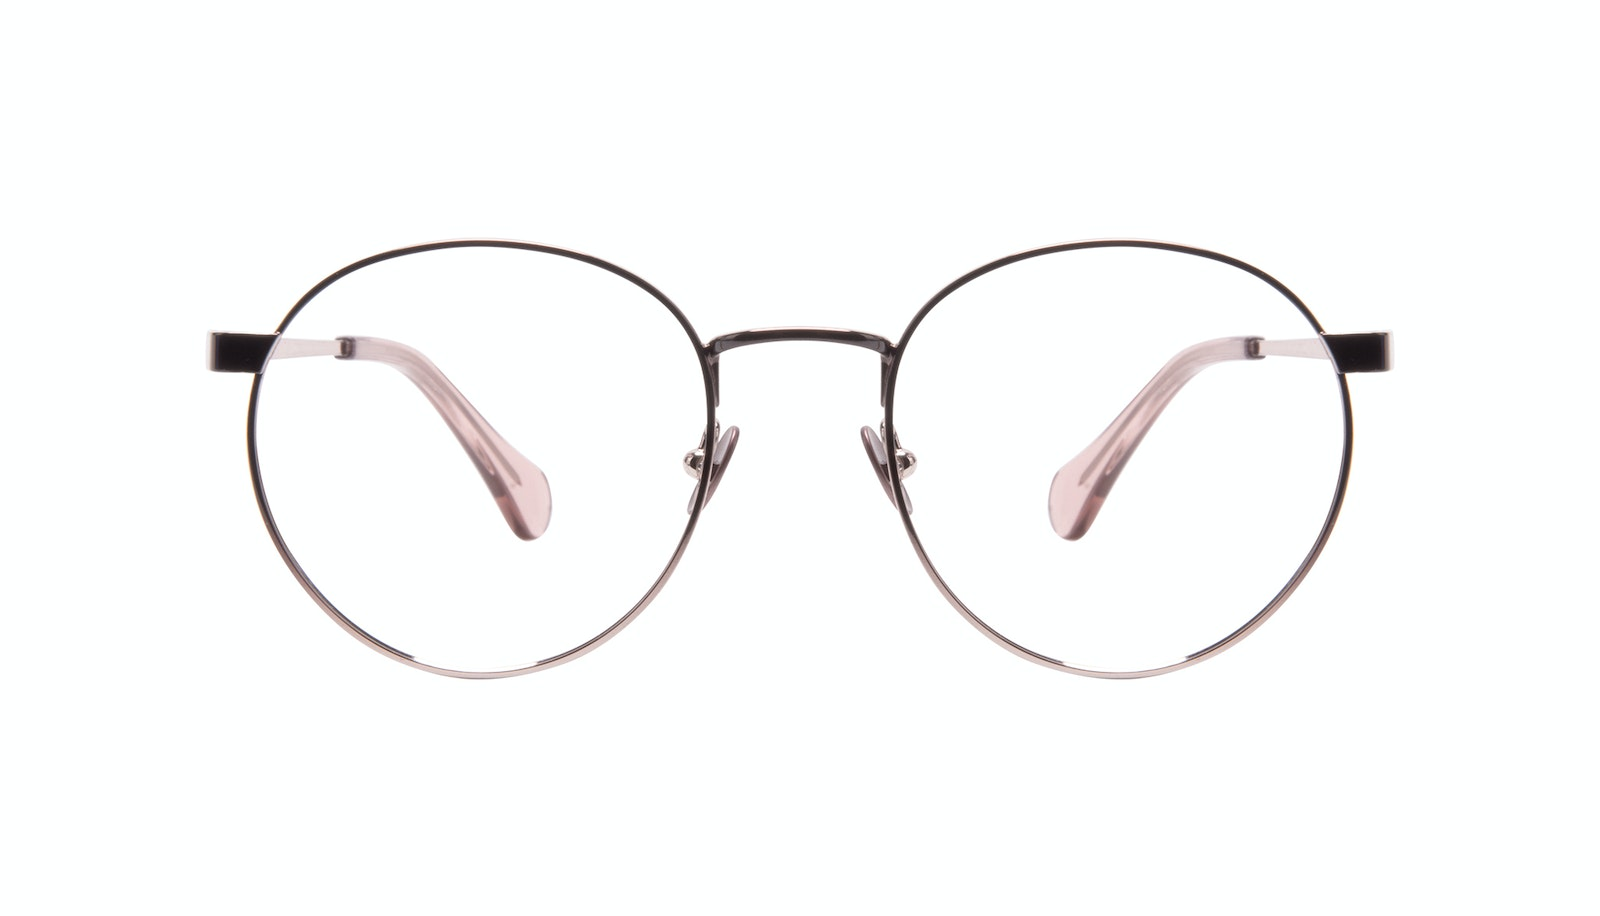 Affordable Fashion Glasses Round Eyeglasses Women Foundry Pink Terra